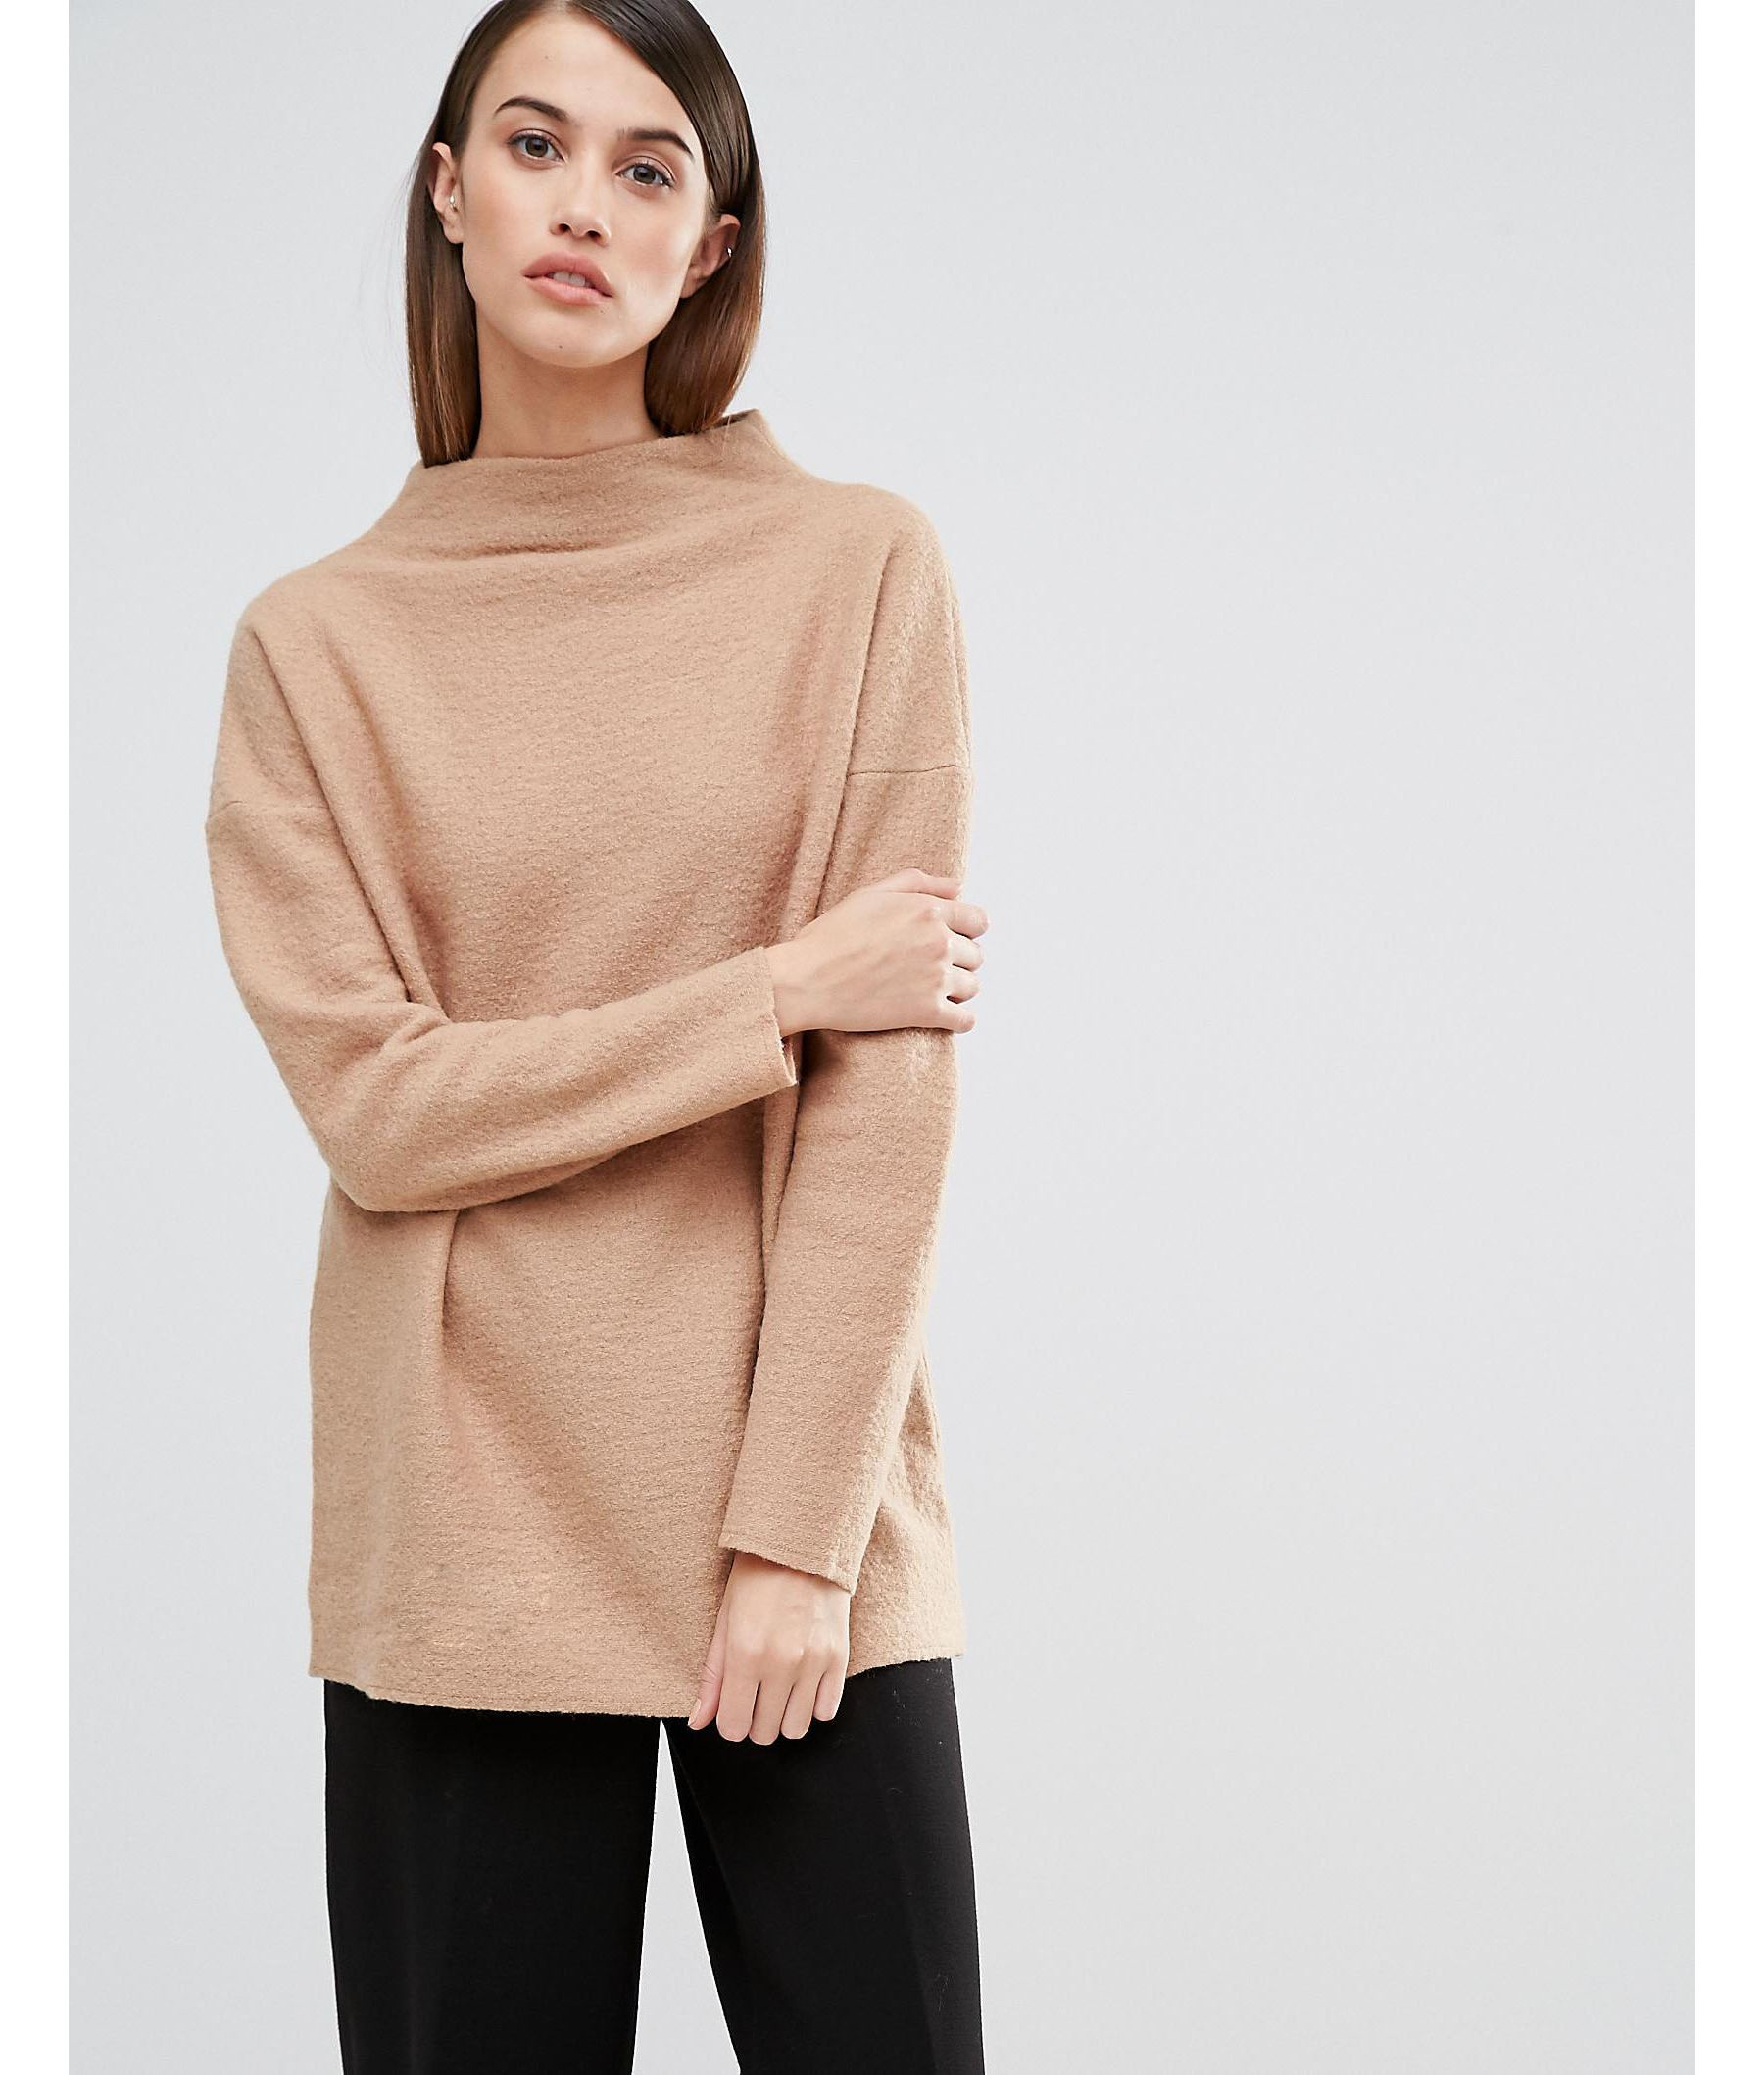 Lyst - SELECTED Elected Darla Funnel Neck Knitted Jumper in Natural 84c237ebe